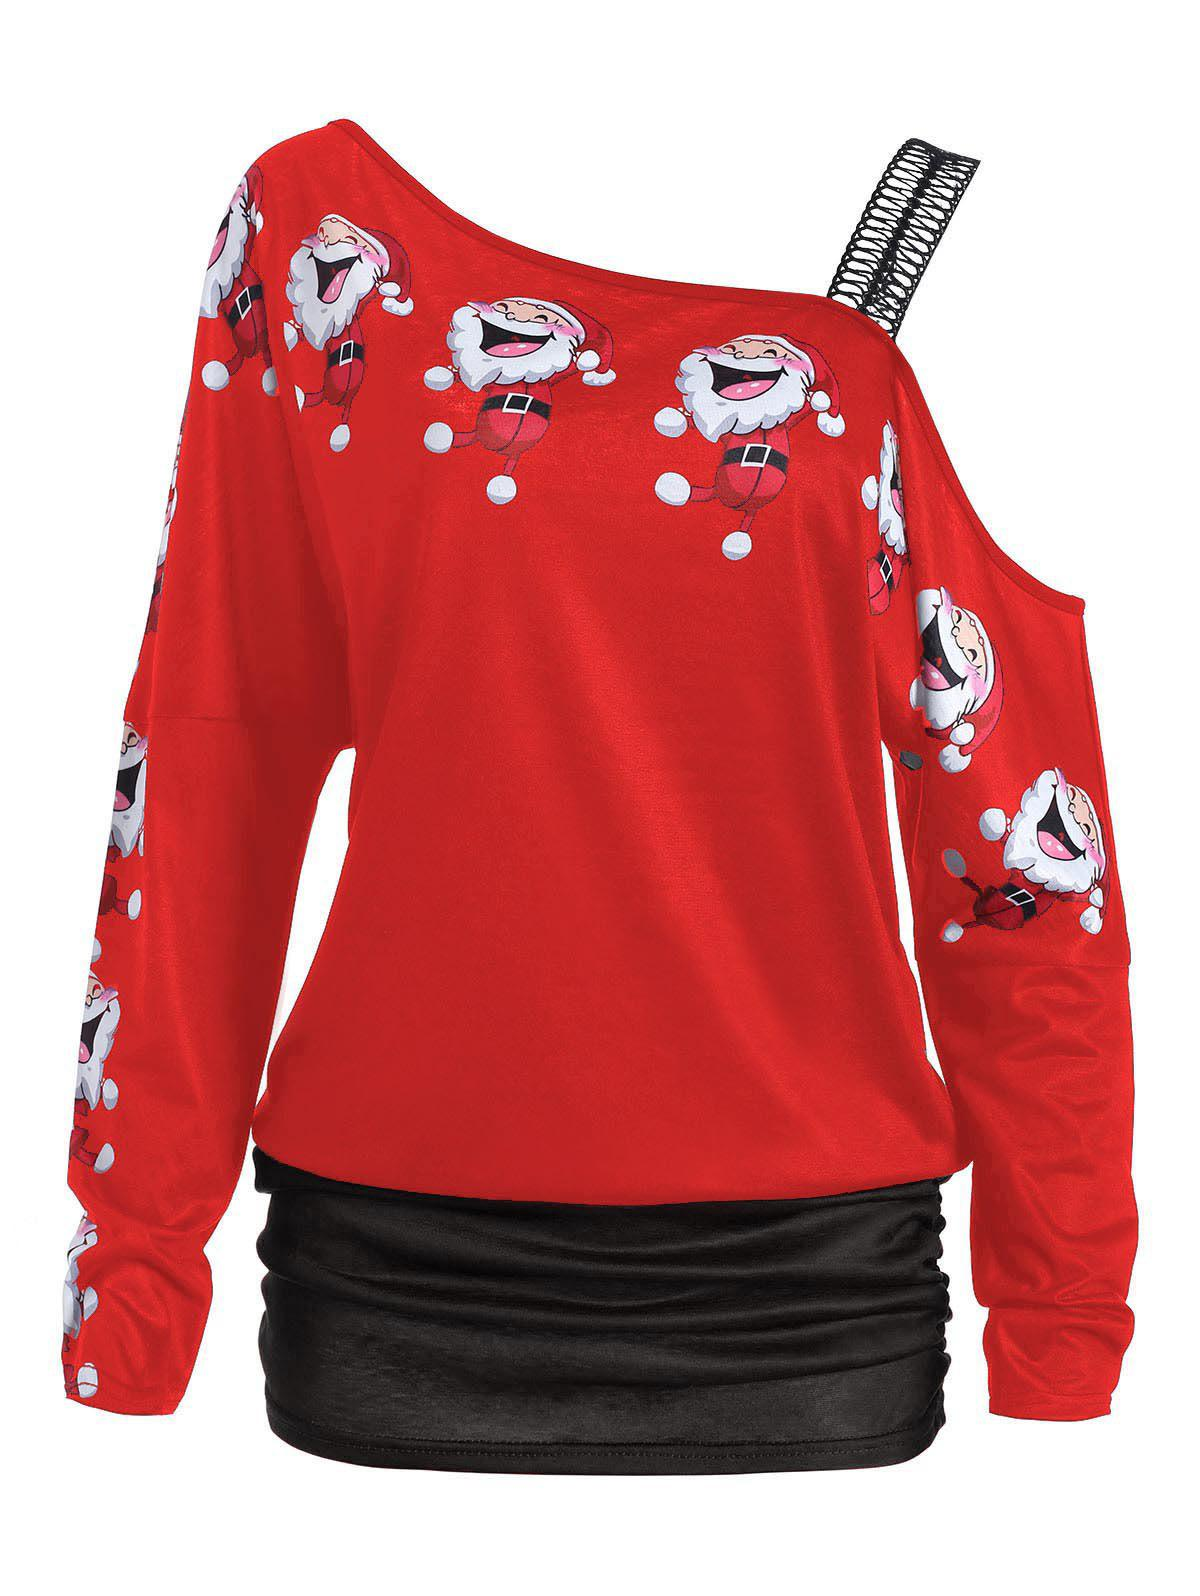 Santa Claus Laugh Print Cold Shoulder T-shirtWOMEN<br><br>Size: XL; Color: RED; Material: Polyester; Shirt Length: Regular; Sleeve Length: Full; Collar: Round Neck; Style: Fashion; Sleeve Type: Cold Shoulder; Pattern Type: Cartoon,Print; Season: Fall,Spring,Winter; Weight: 0.2200kg; Package Contents: 1 x T-shirt;